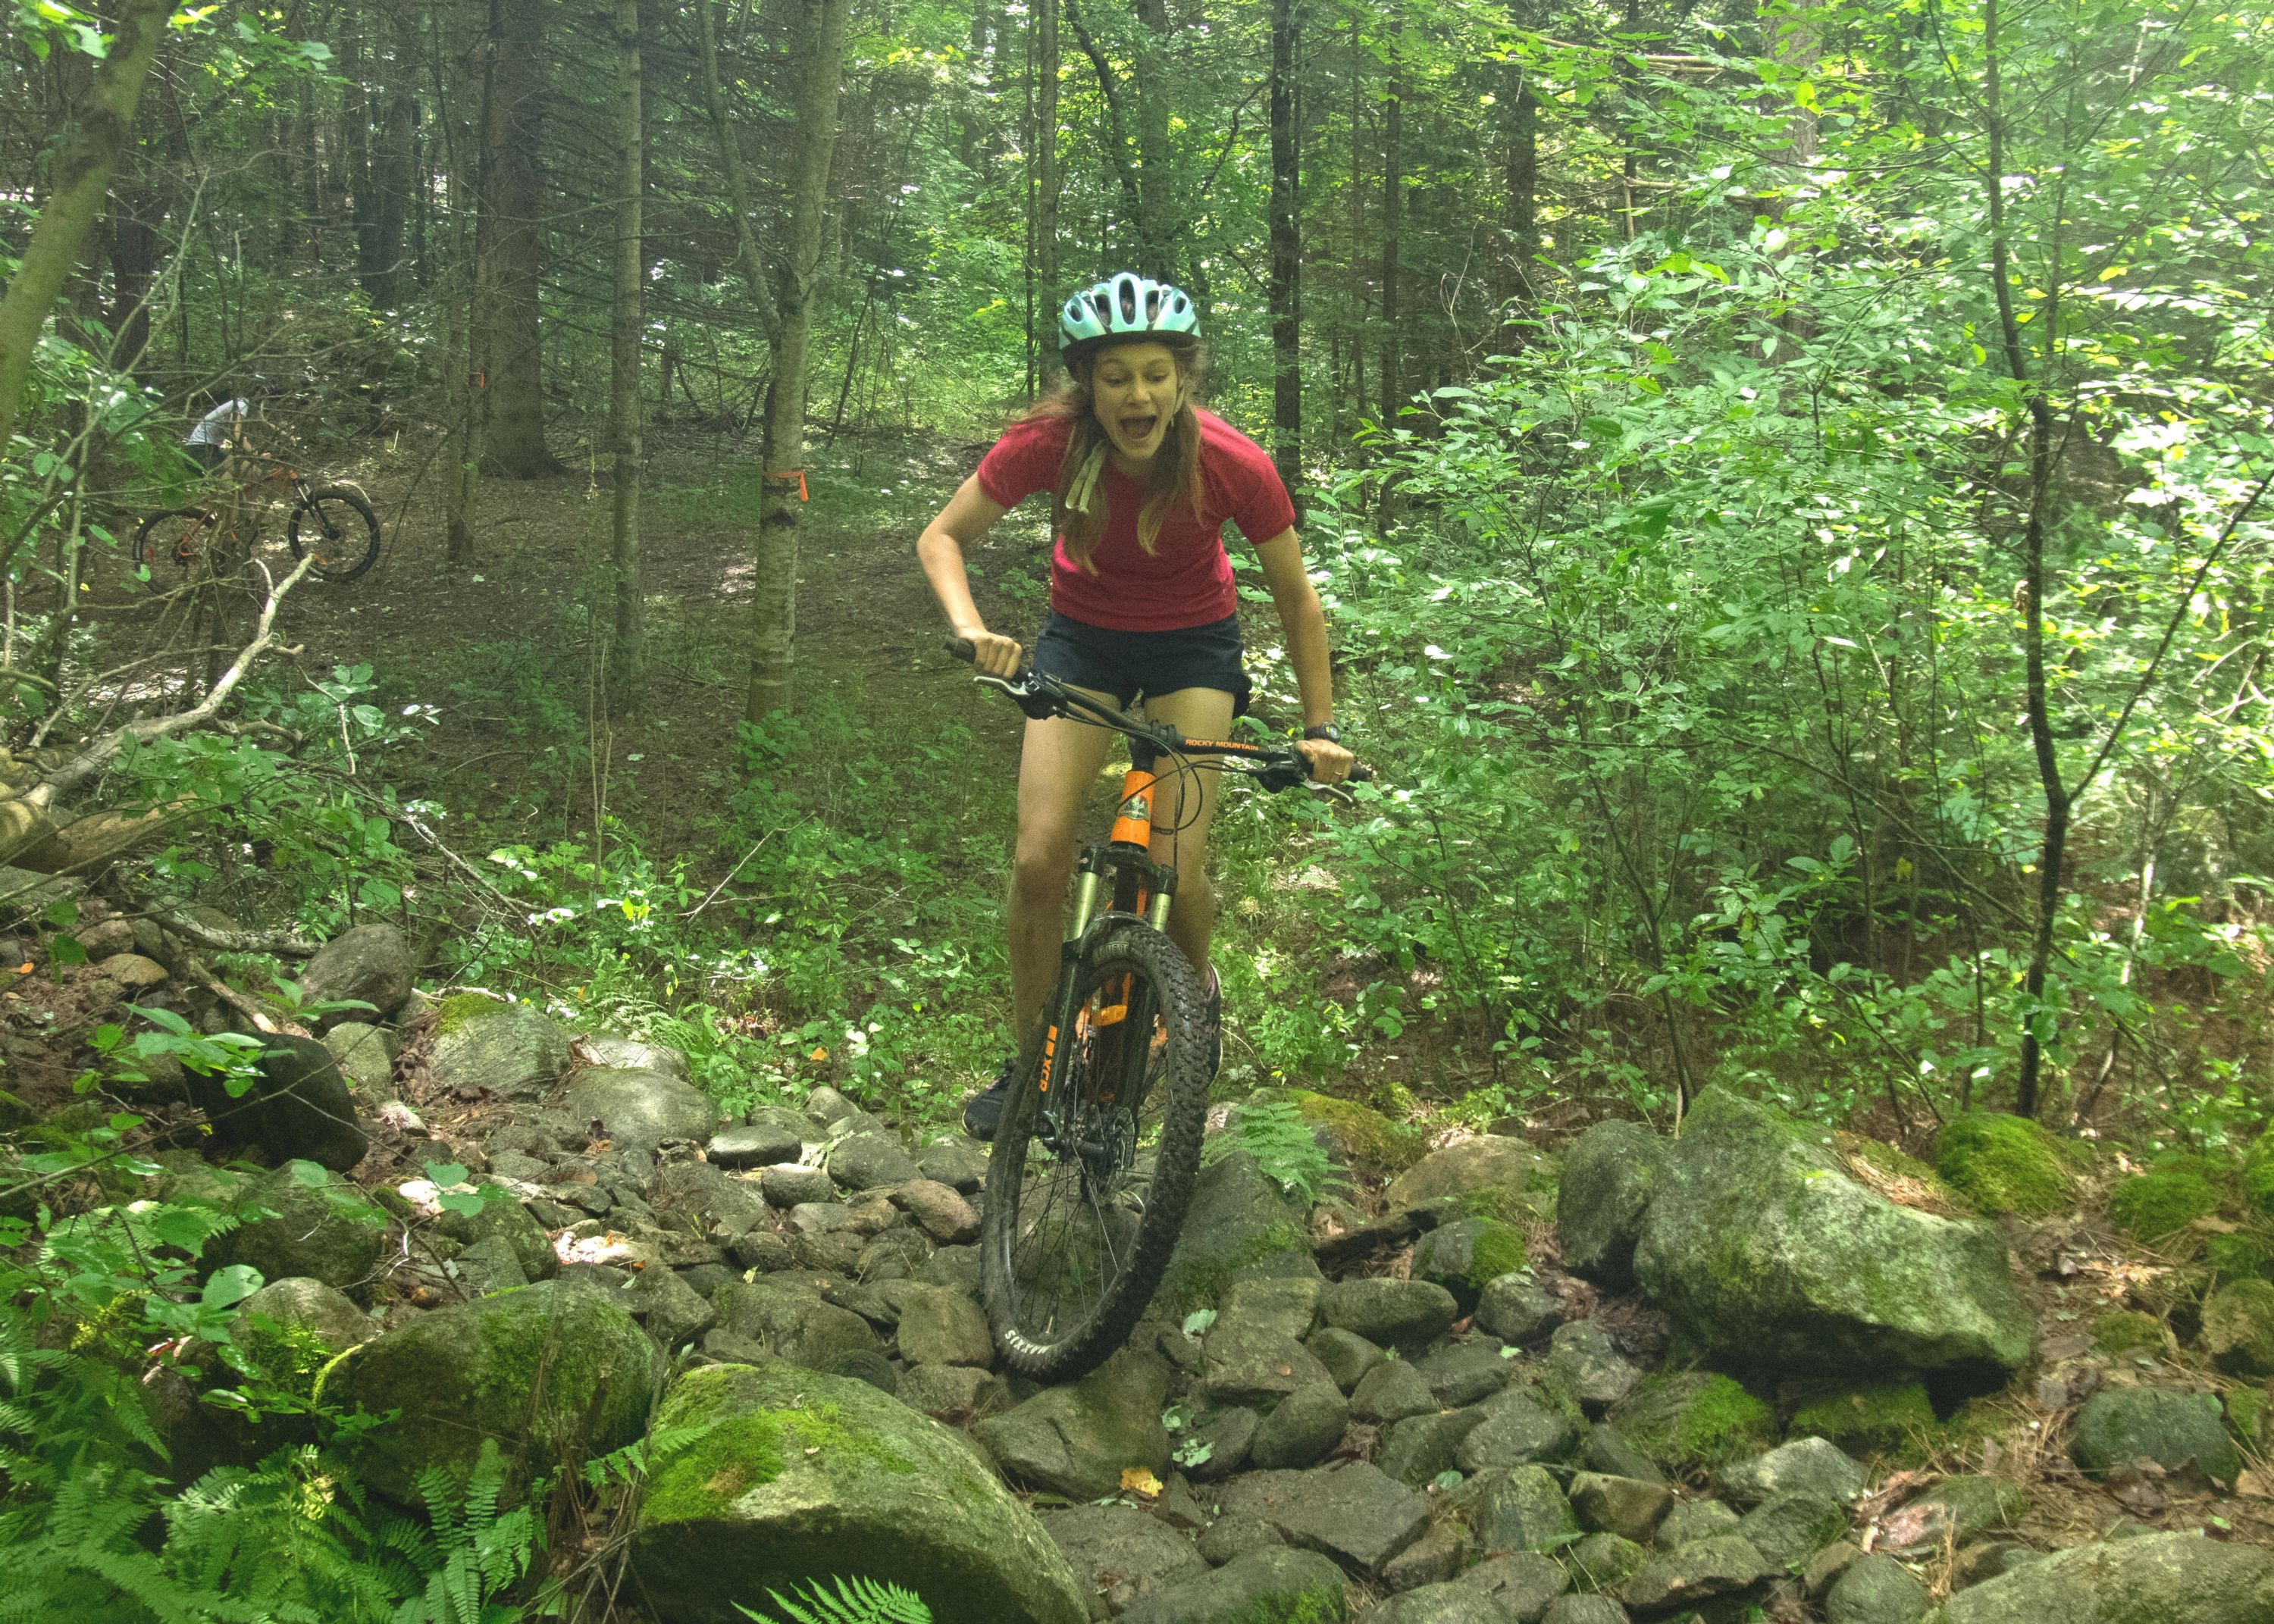 Camper riding mountain bike through forest at christian adventure summer camp in haliburton, ontario